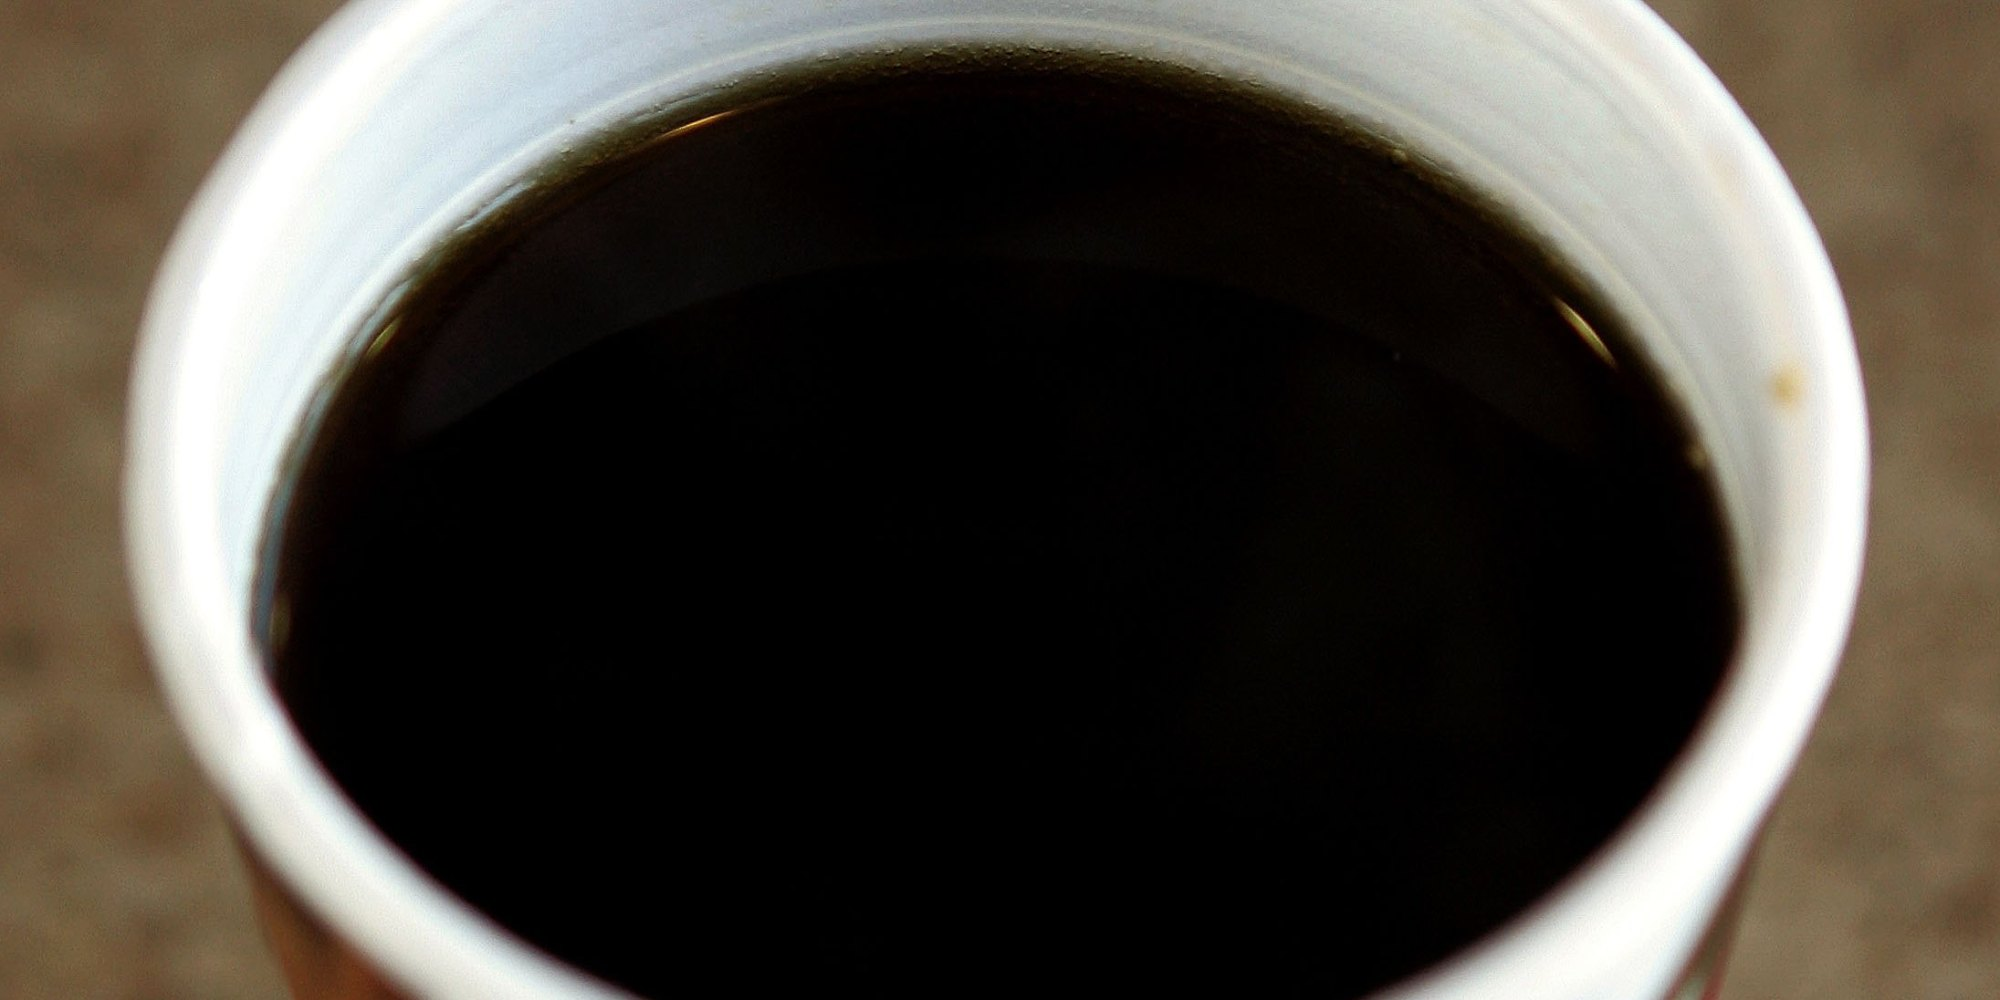 mcdonalds hot coffee 2018-5-28 police in washington state said a mcdonald's manager suffered severe burns to her face and neck after an angry customer threw hot coffee at her.